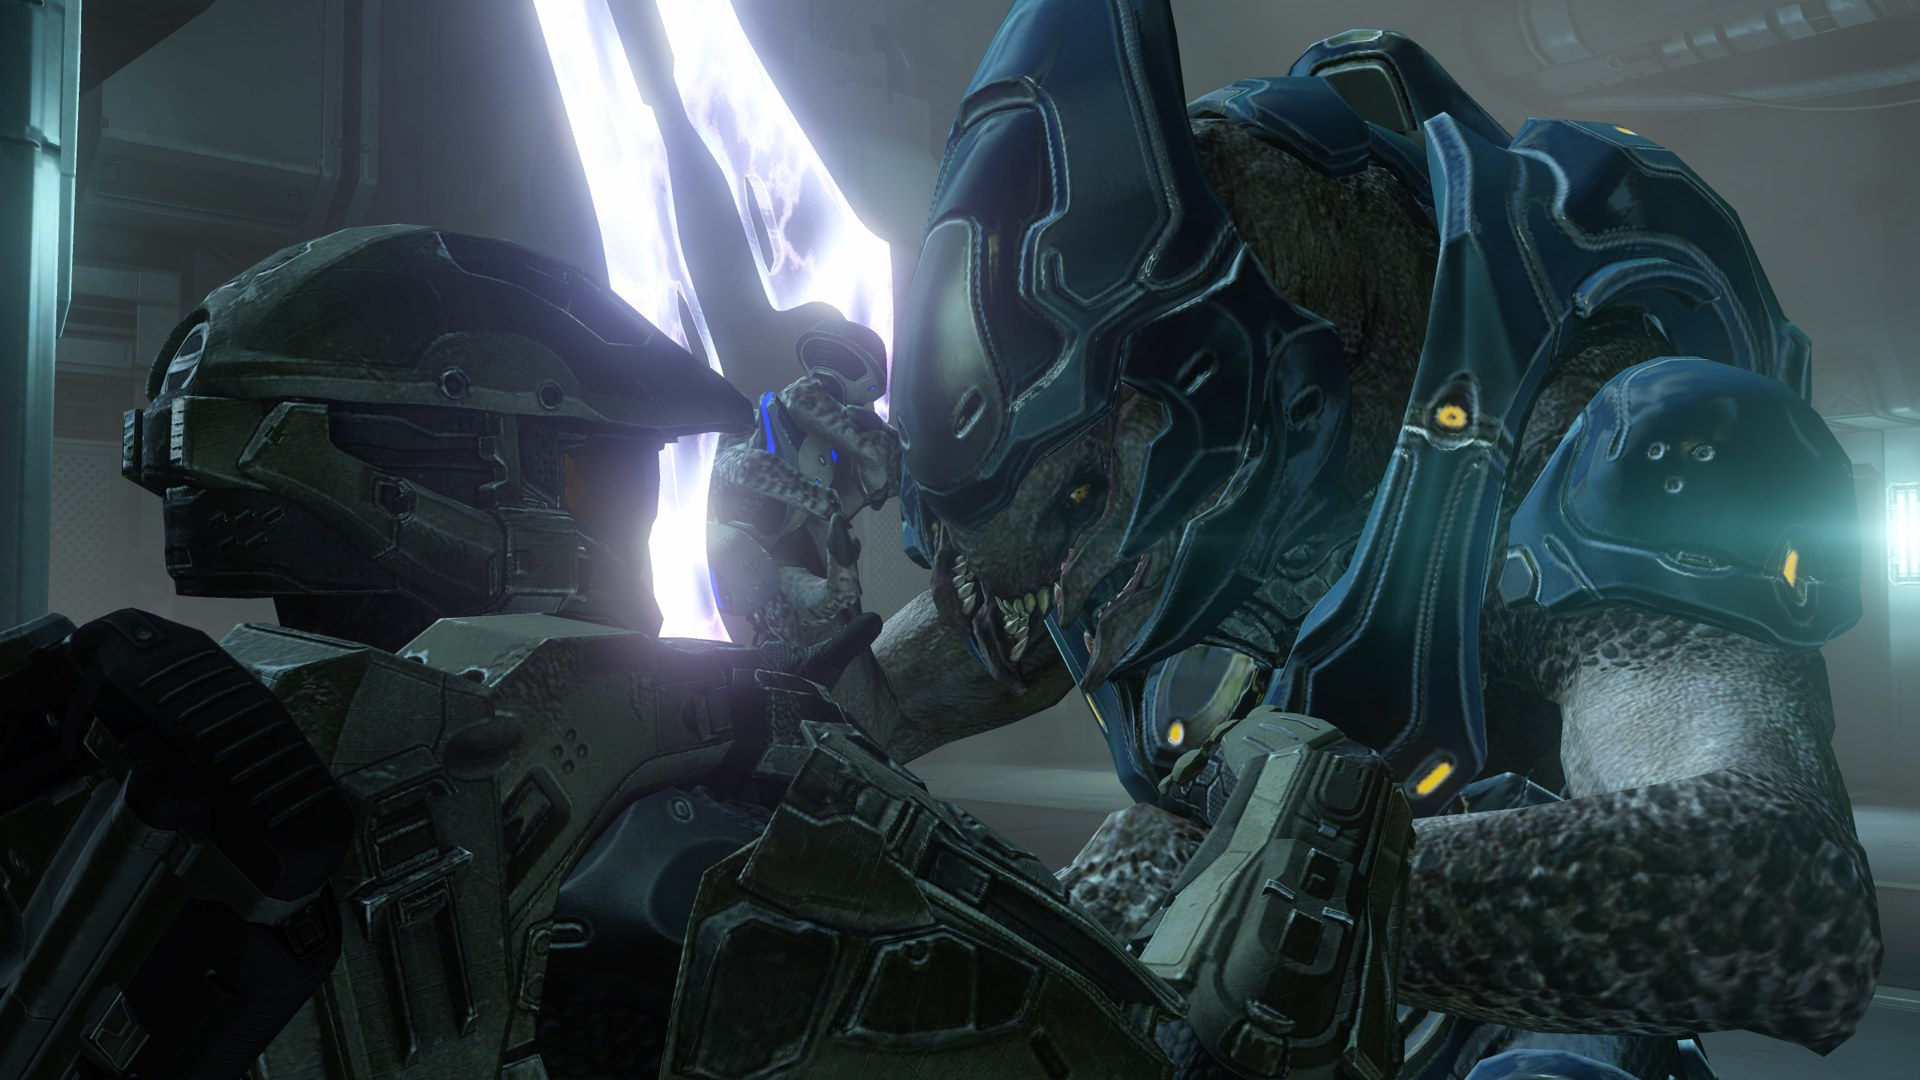 Halo 4 HD Wallpaper Background Image 1920x1080 ID313462 1920x1080